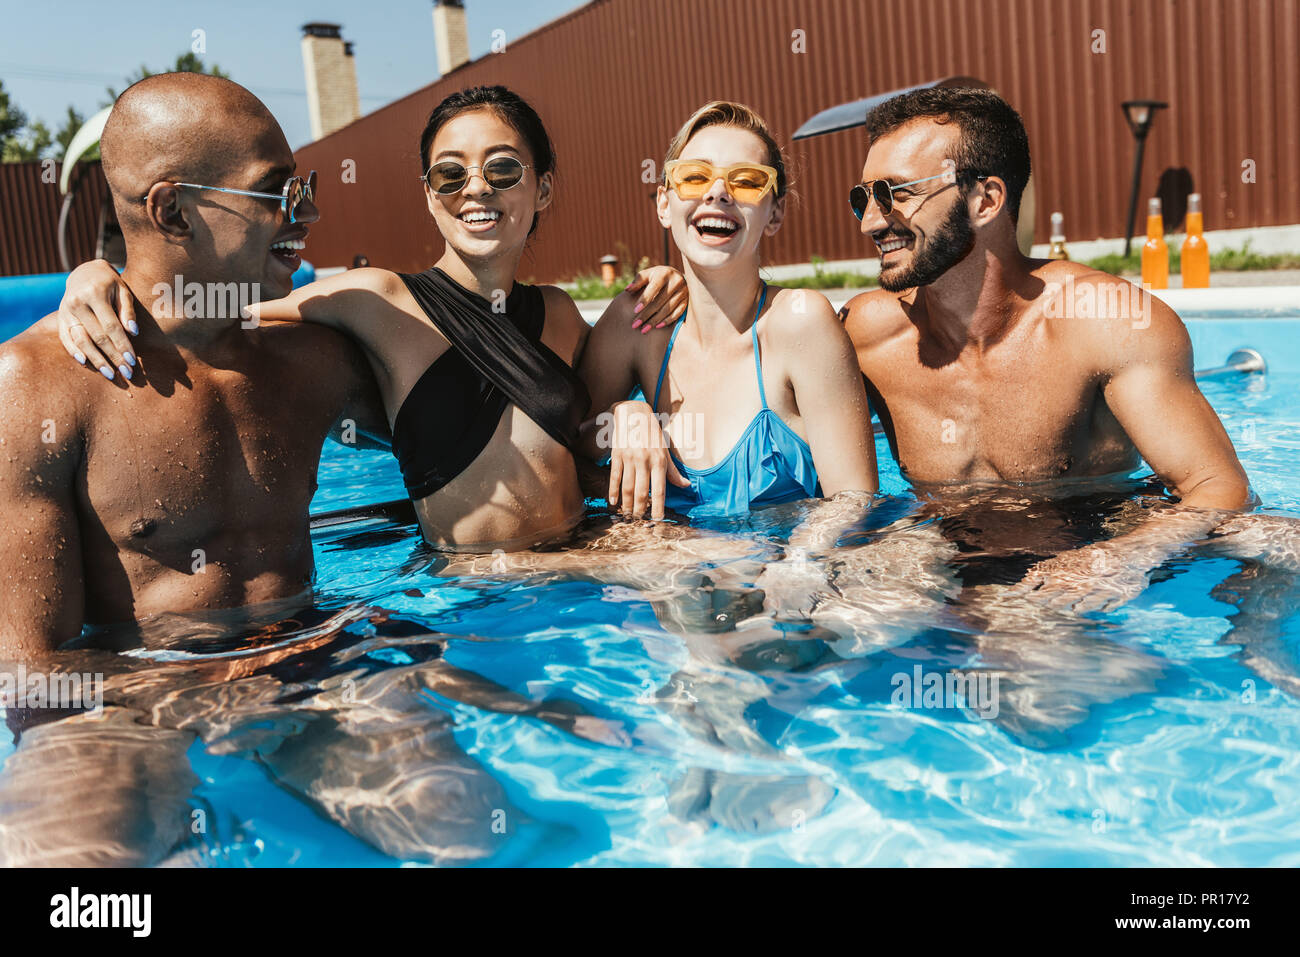 laughing multiethnic couples in sunglasses spending time in swimming pool - Stock Image